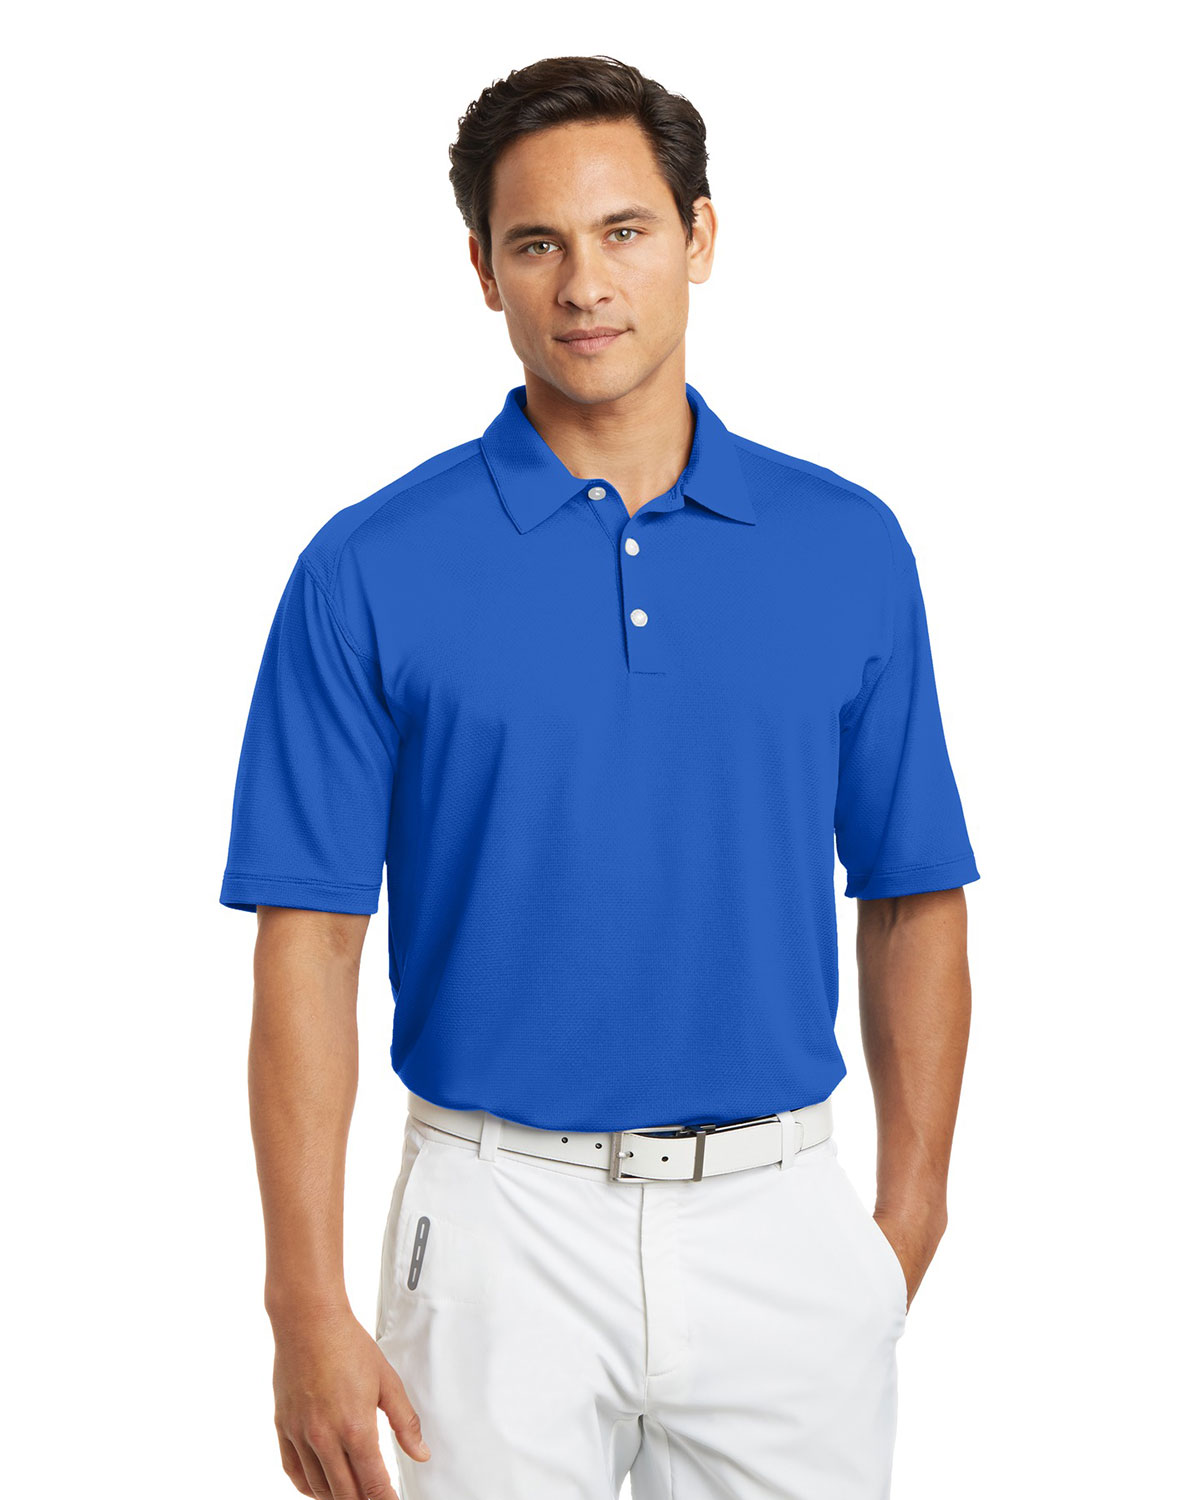 DRI-FIT MINI TEXTURE POLO